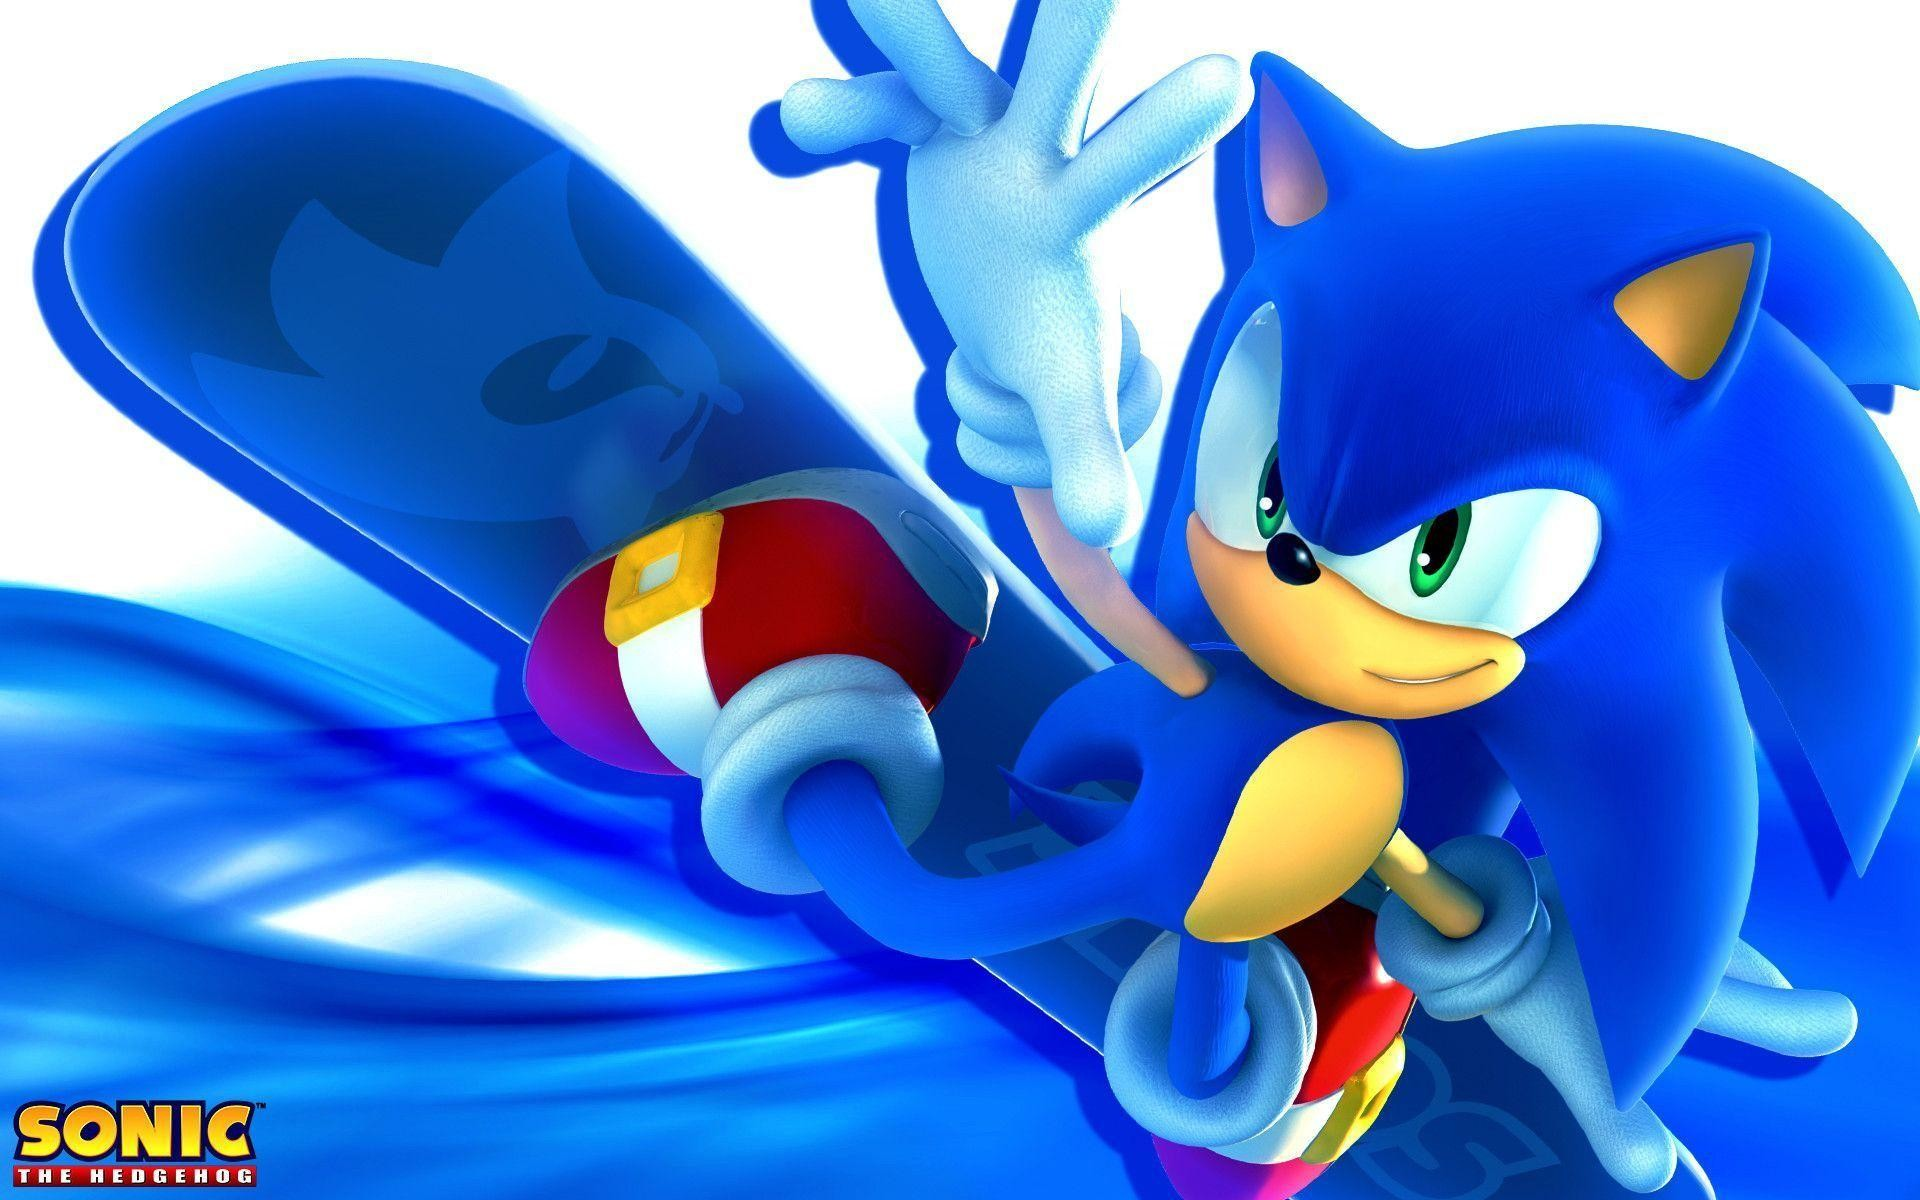 … sonic the hedgehog wallpapers 2016 wallpaper cave …